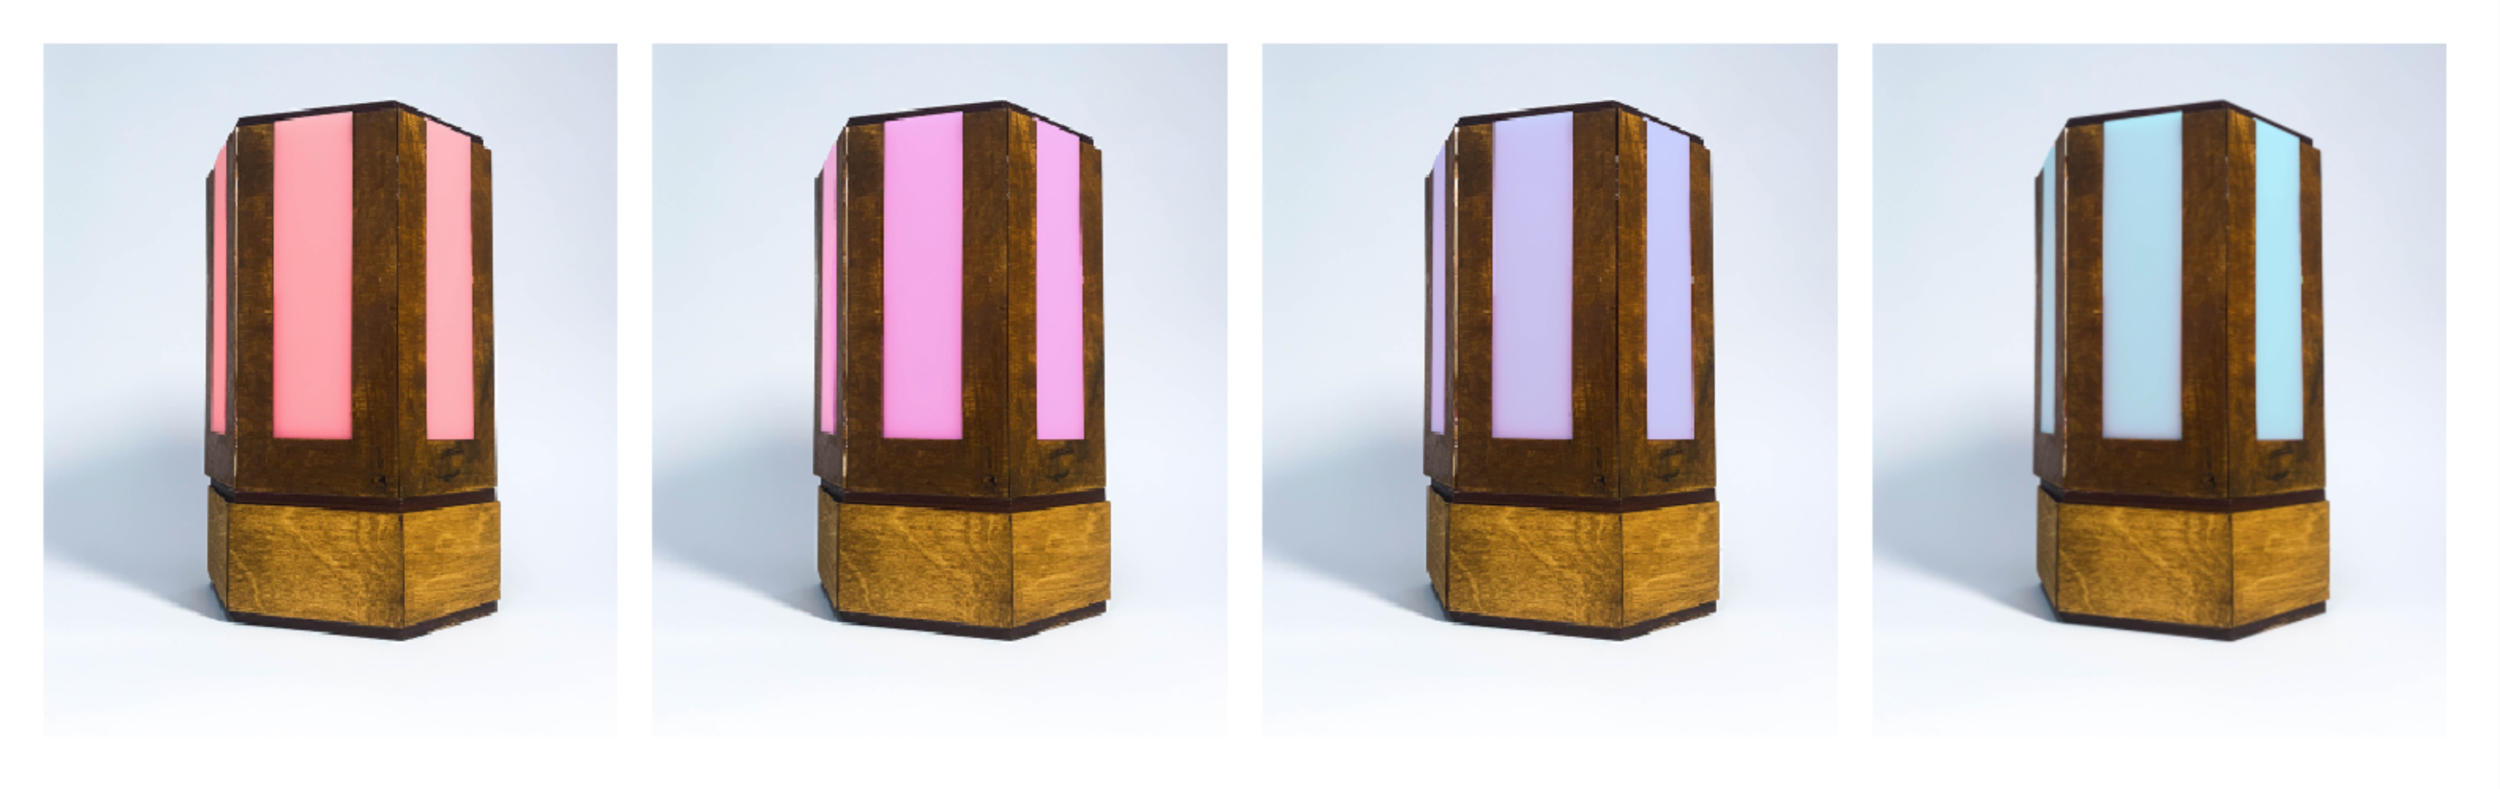 Different humidity levels of the lamp and their corresponding color. Color changes in increments on the RGB scale. 1. Red Hue: 0-30% humidity level, 2. Pink Hue: 30-60% humidity level, 3. Purple Hue: 60-90% humidity level, 4. Blue Hue 90-100% humidity level